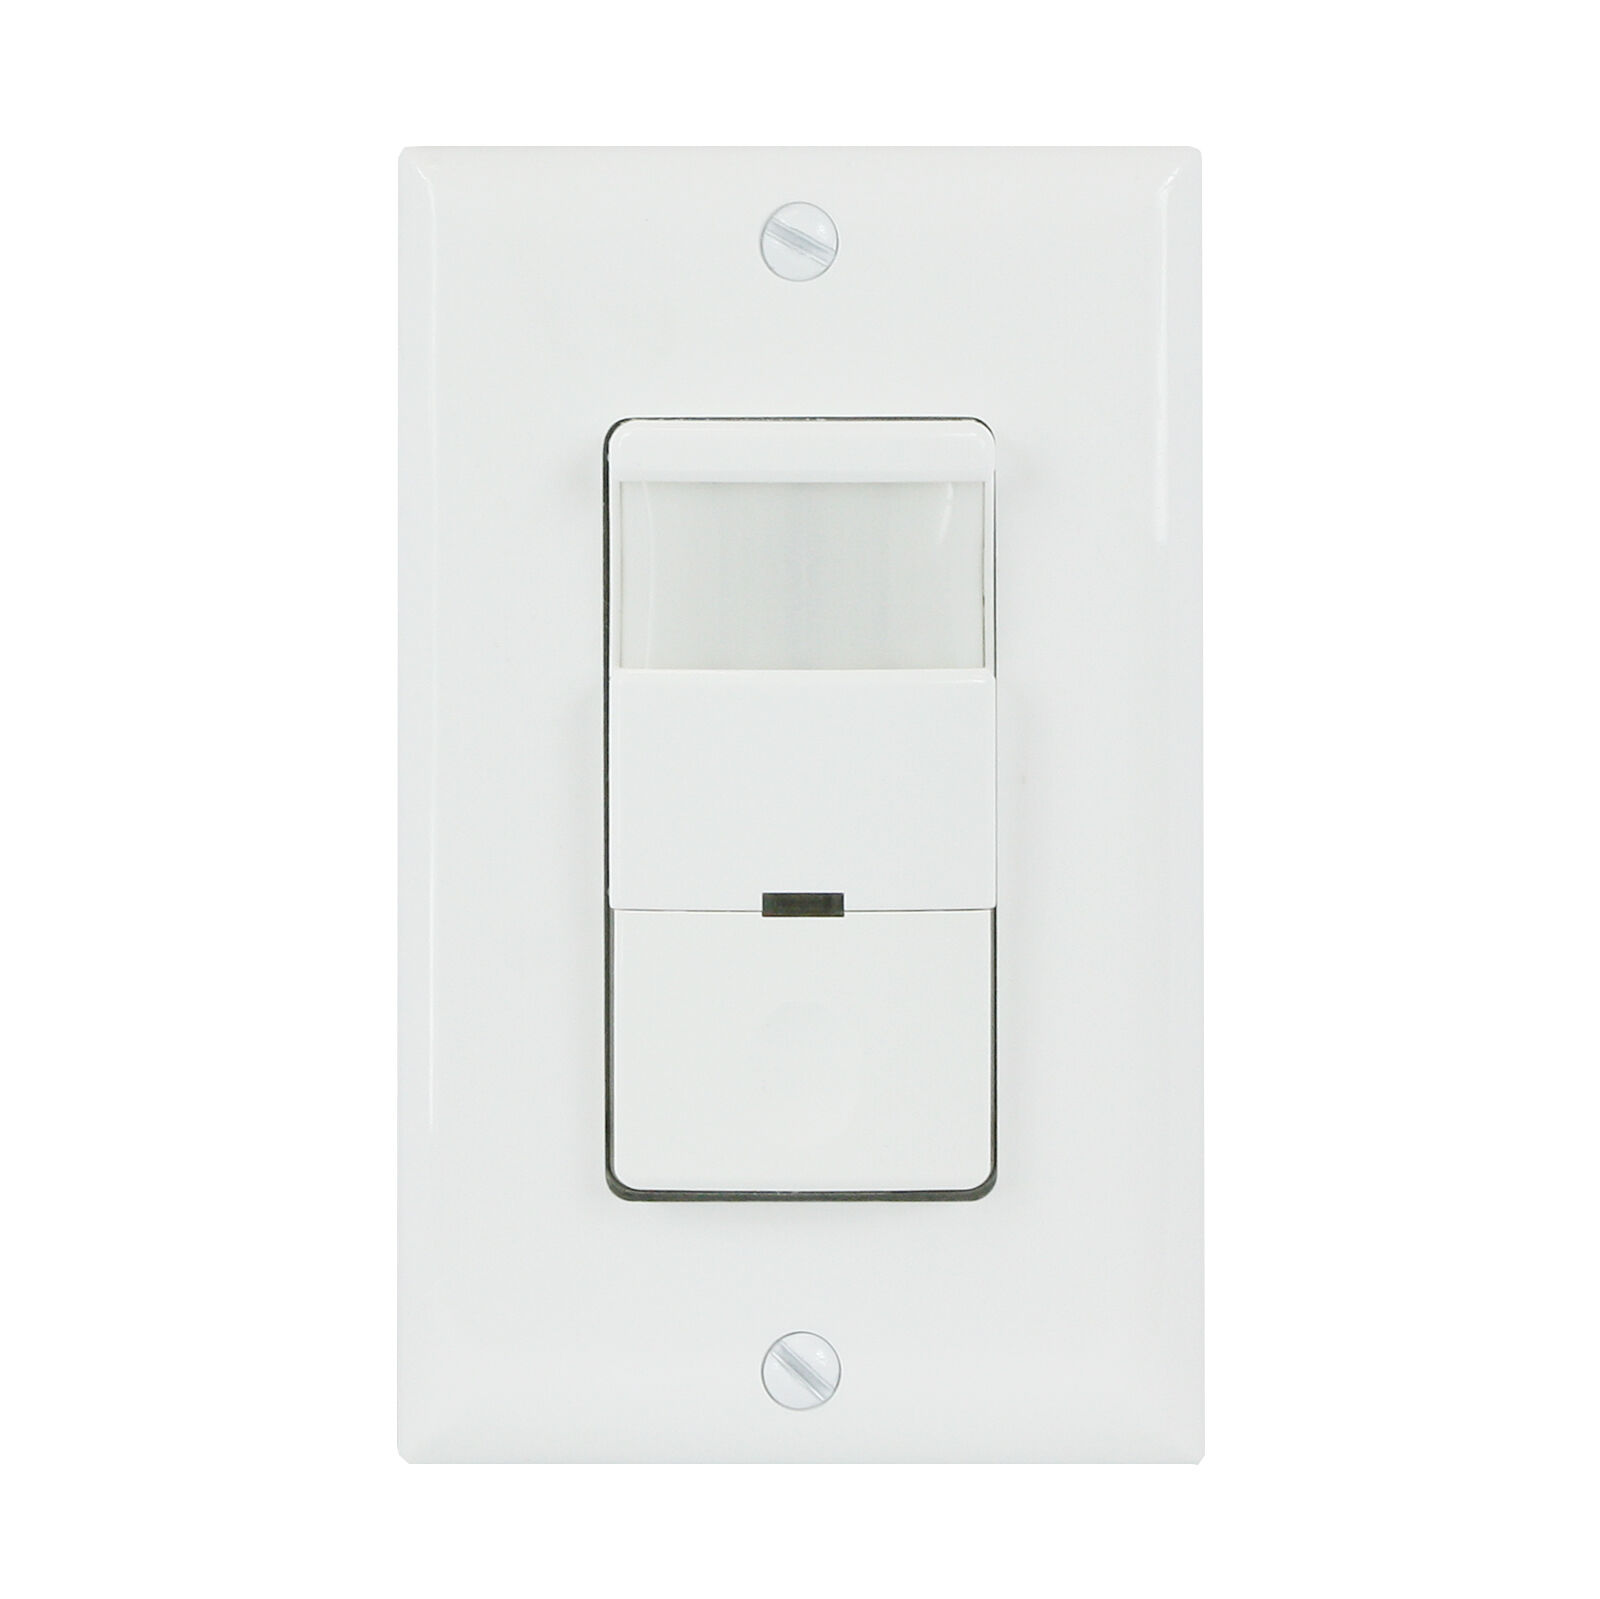 pir motion sensor light switch detector infrared wall occupancy white. Black Bedroom Furniture Sets. Home Design Ideas